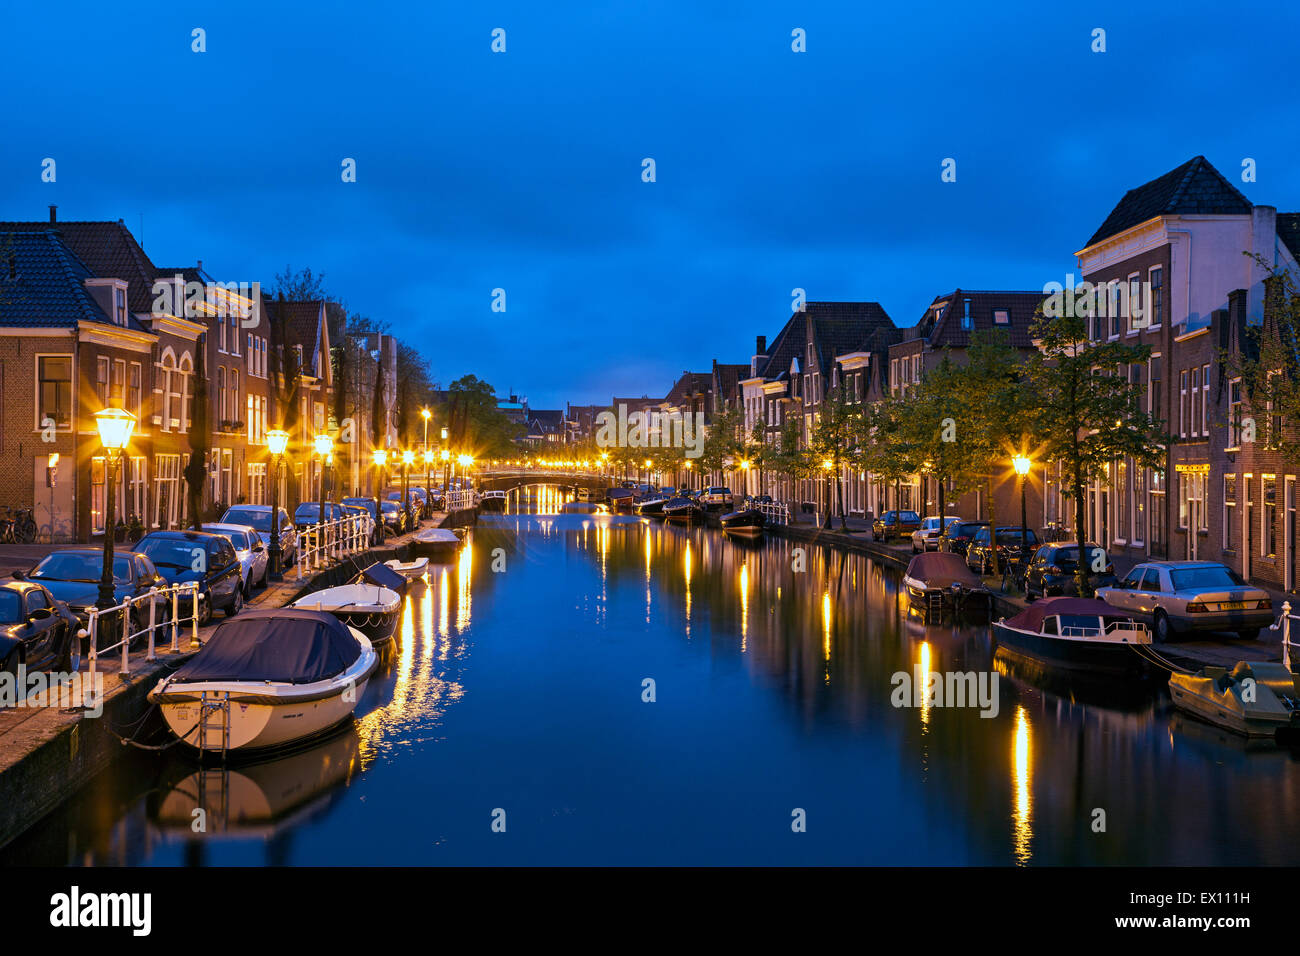 Houses, boats canal, Leiden, Holland, The Netherlands - Stock Image